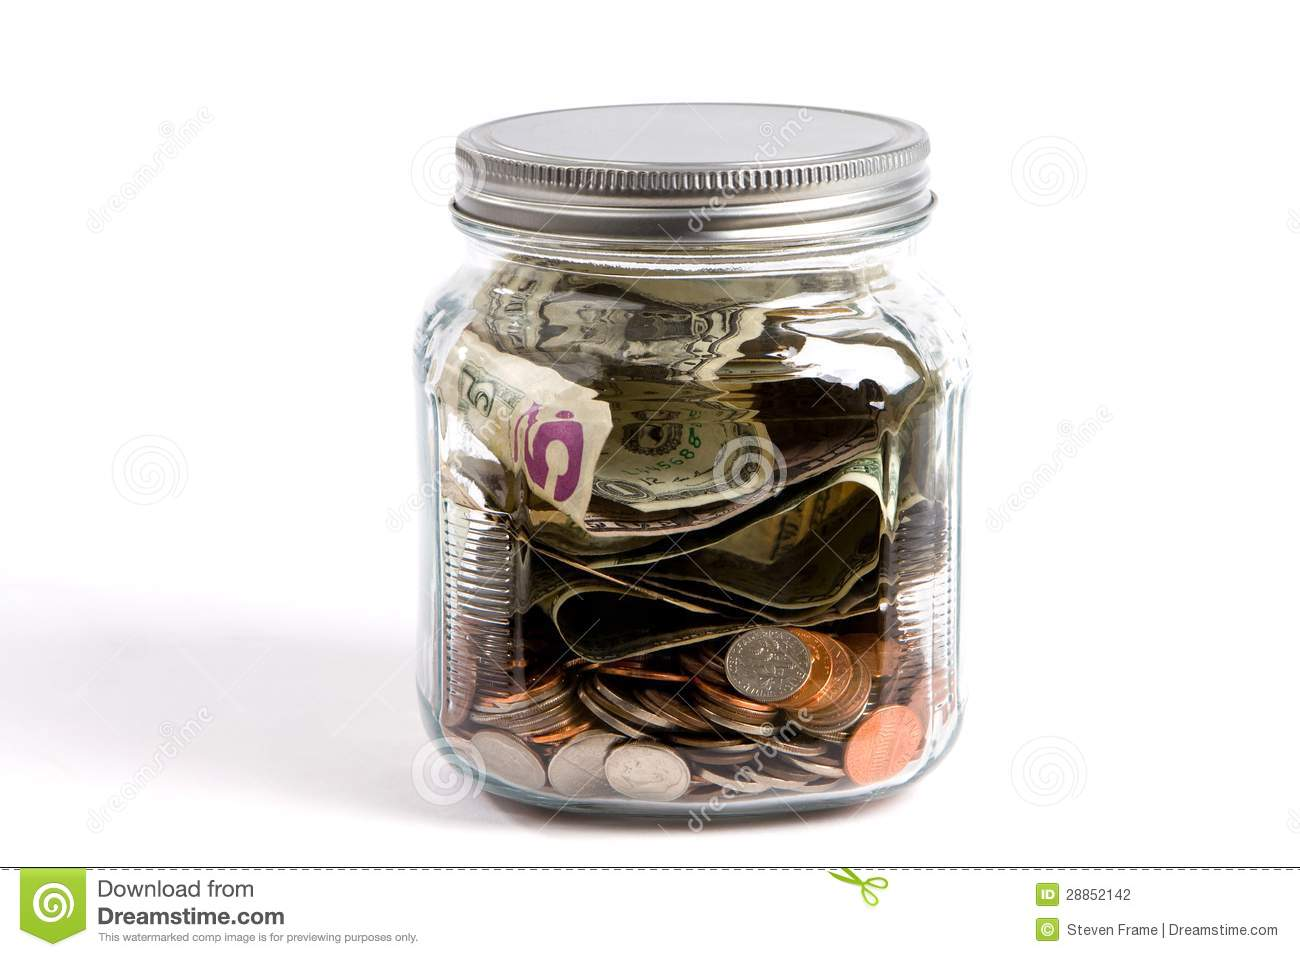 Money jar stock photography image 28852142 for Cool money jars